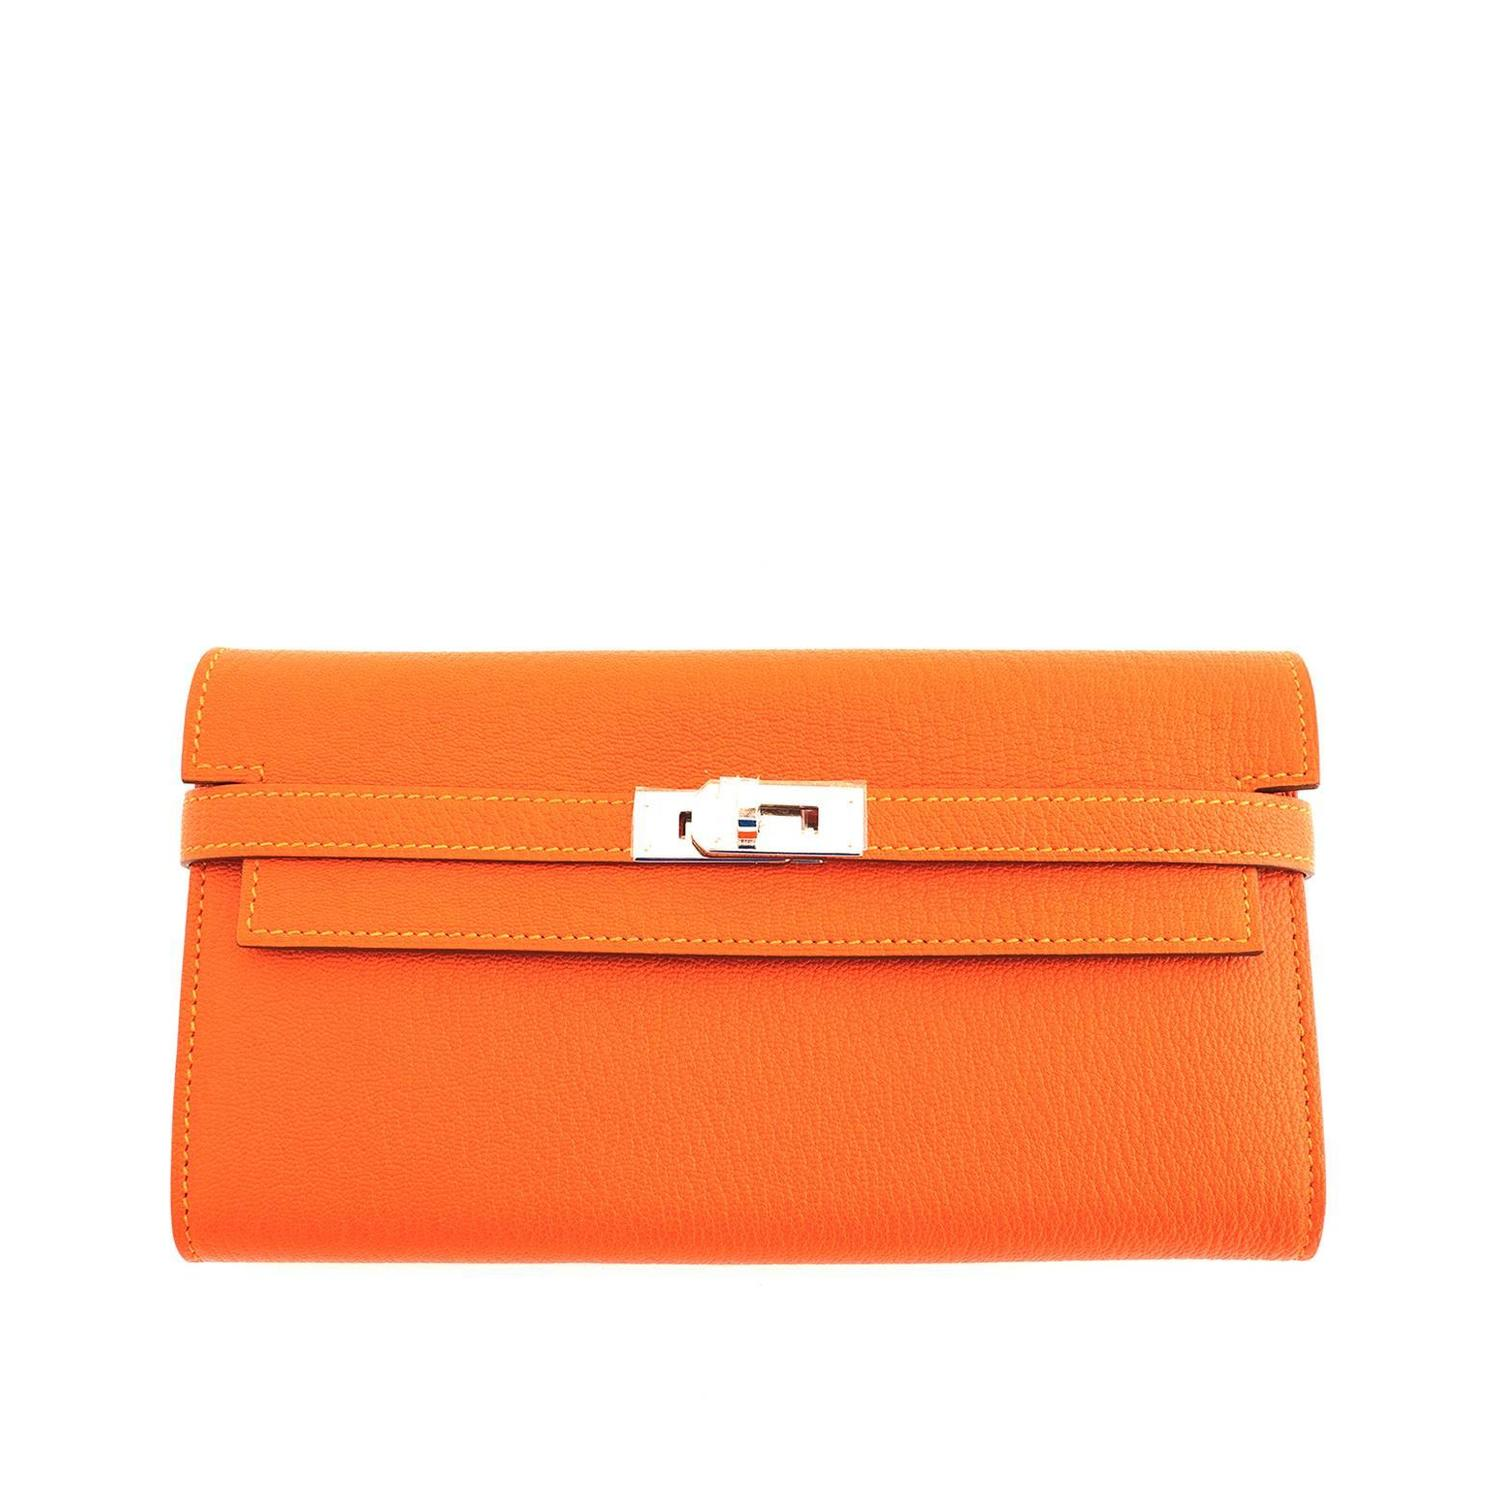 Chicjoy Wallets and Small Accessories - New York, NY 10003 - 1stdibs